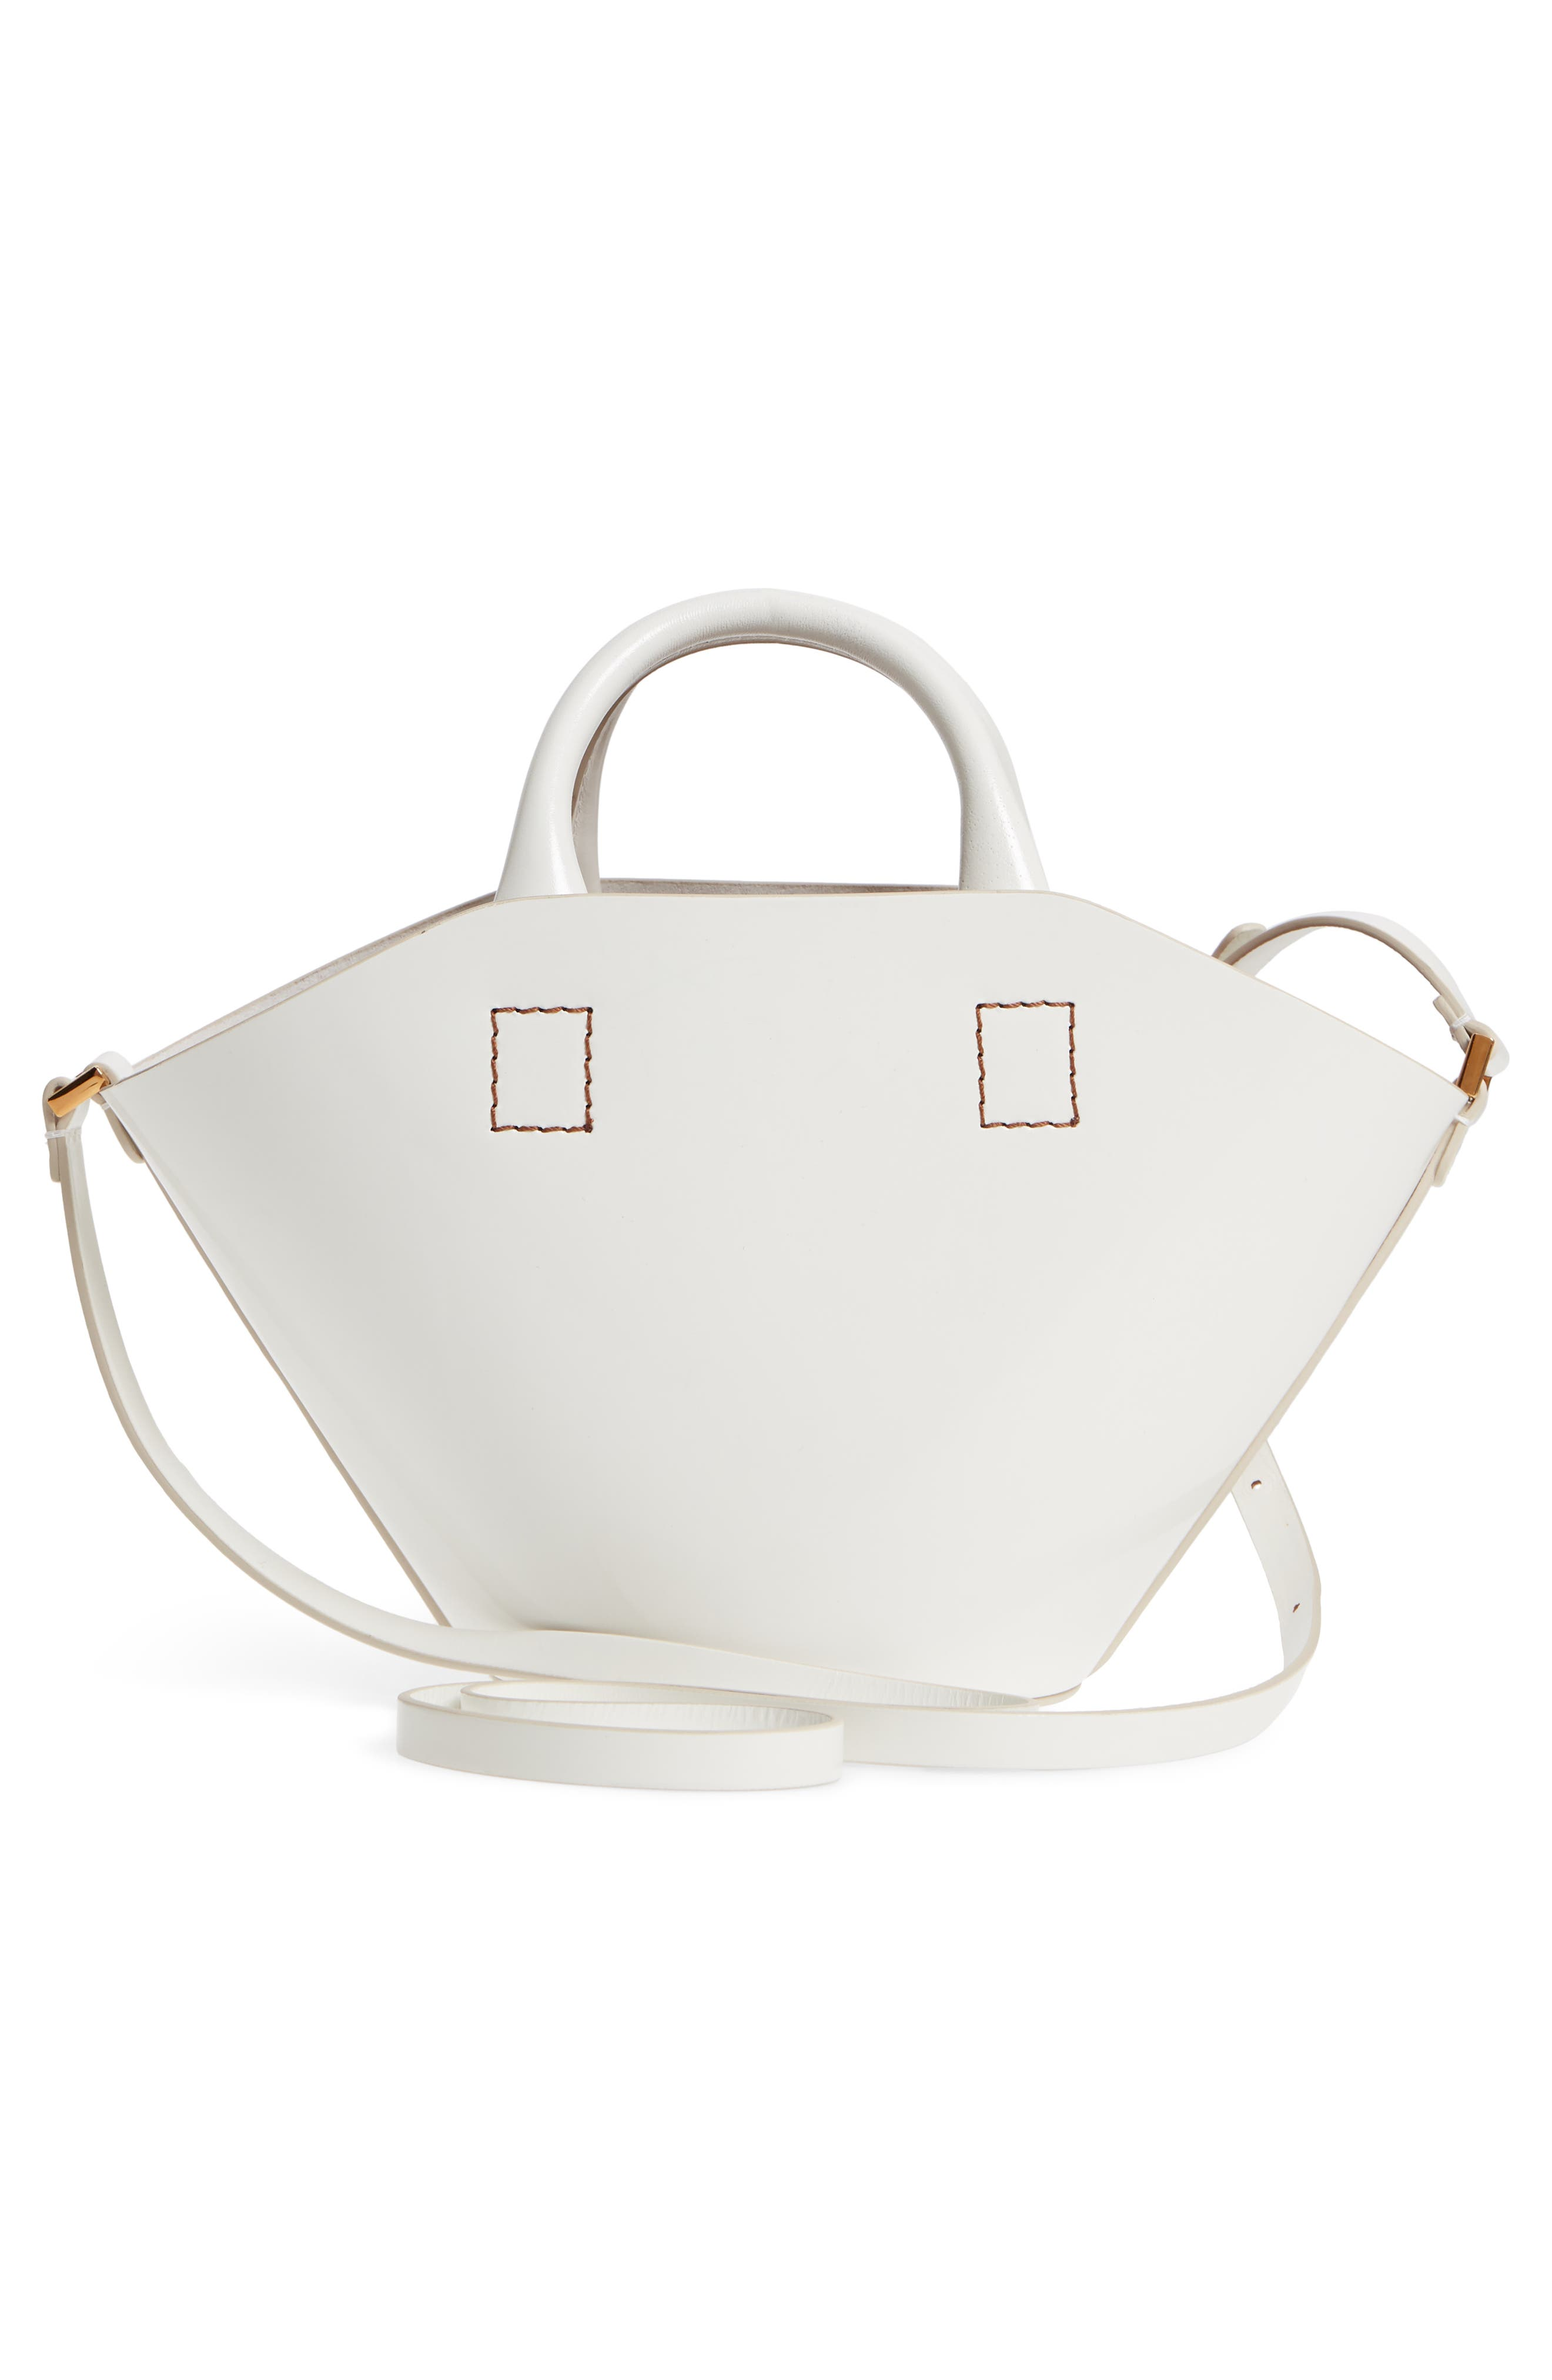 Small Leather Bucket Bag,                             Alternate thumbnail 3, color,                             WHITE